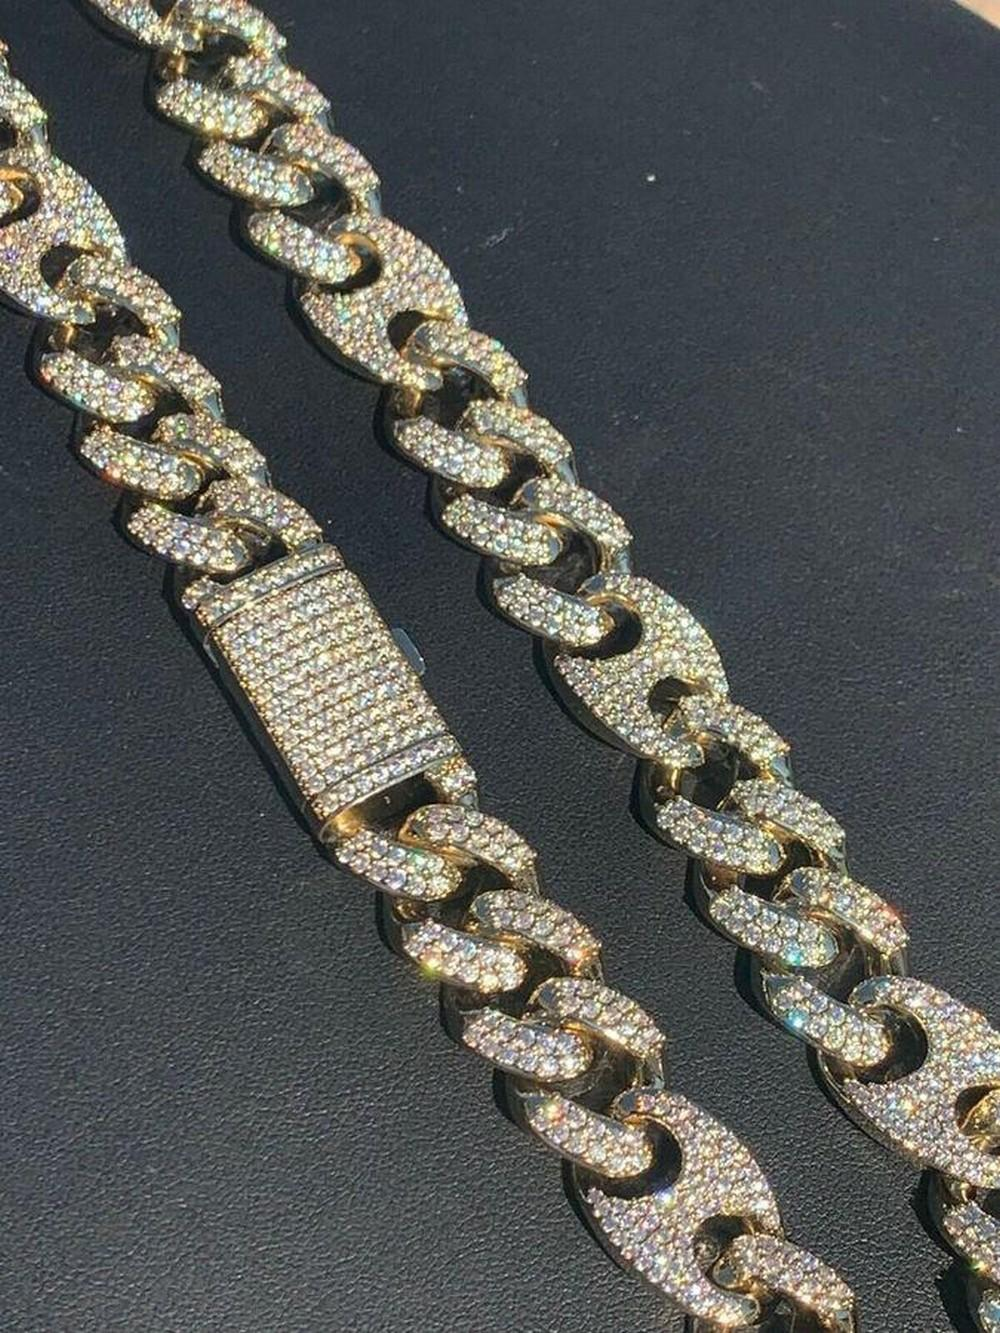 Unisex Cuban Link Chain ICY Stainless Hip Hop Figarucci Choker